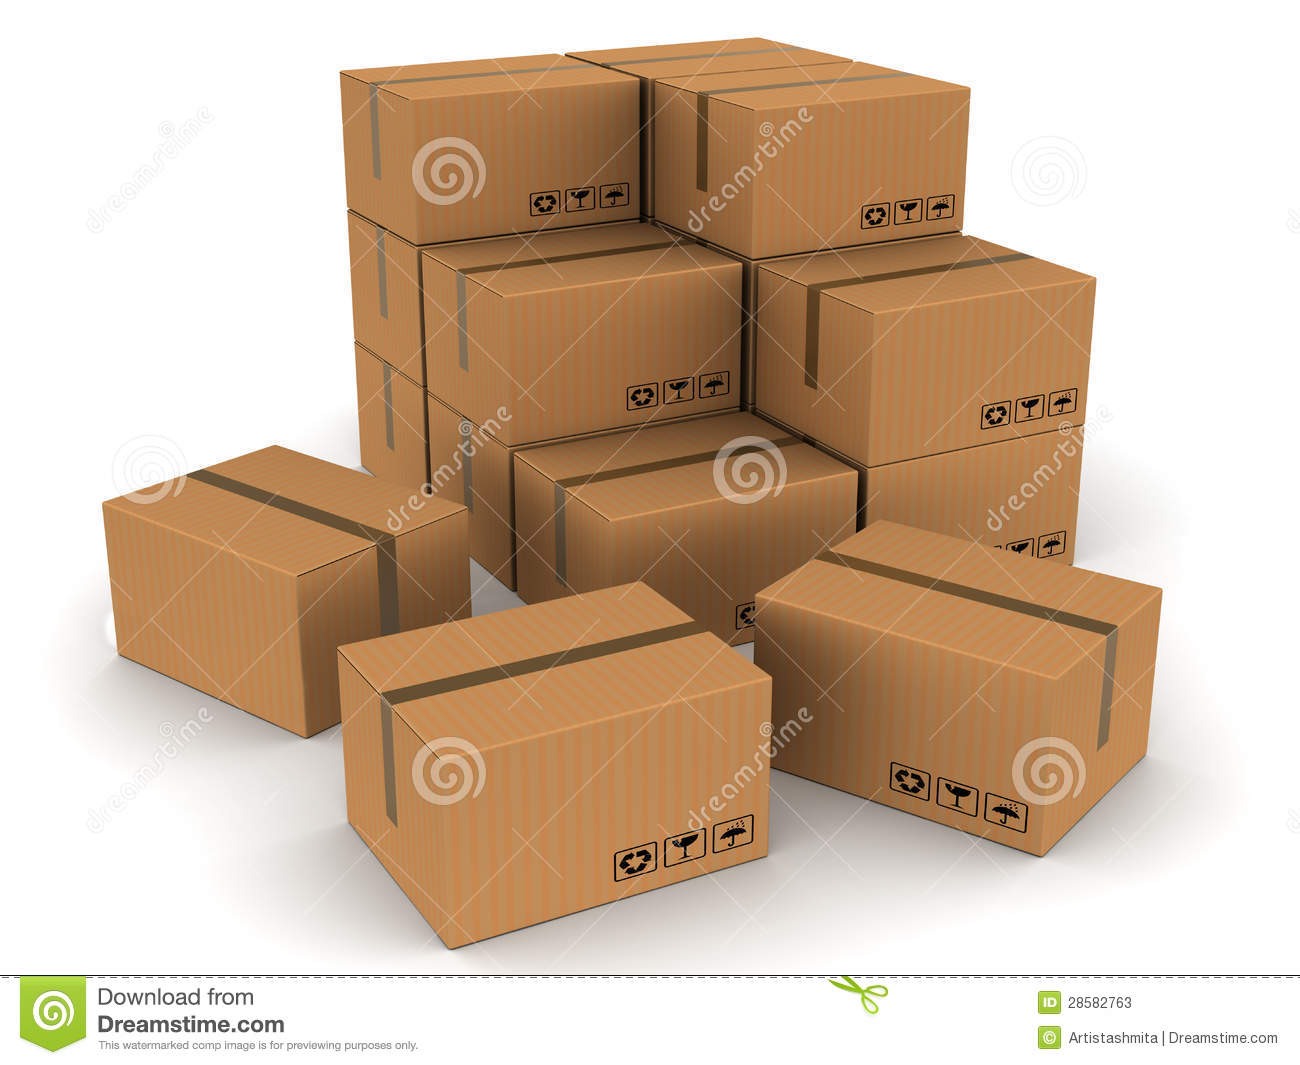 Packed boxes cartons